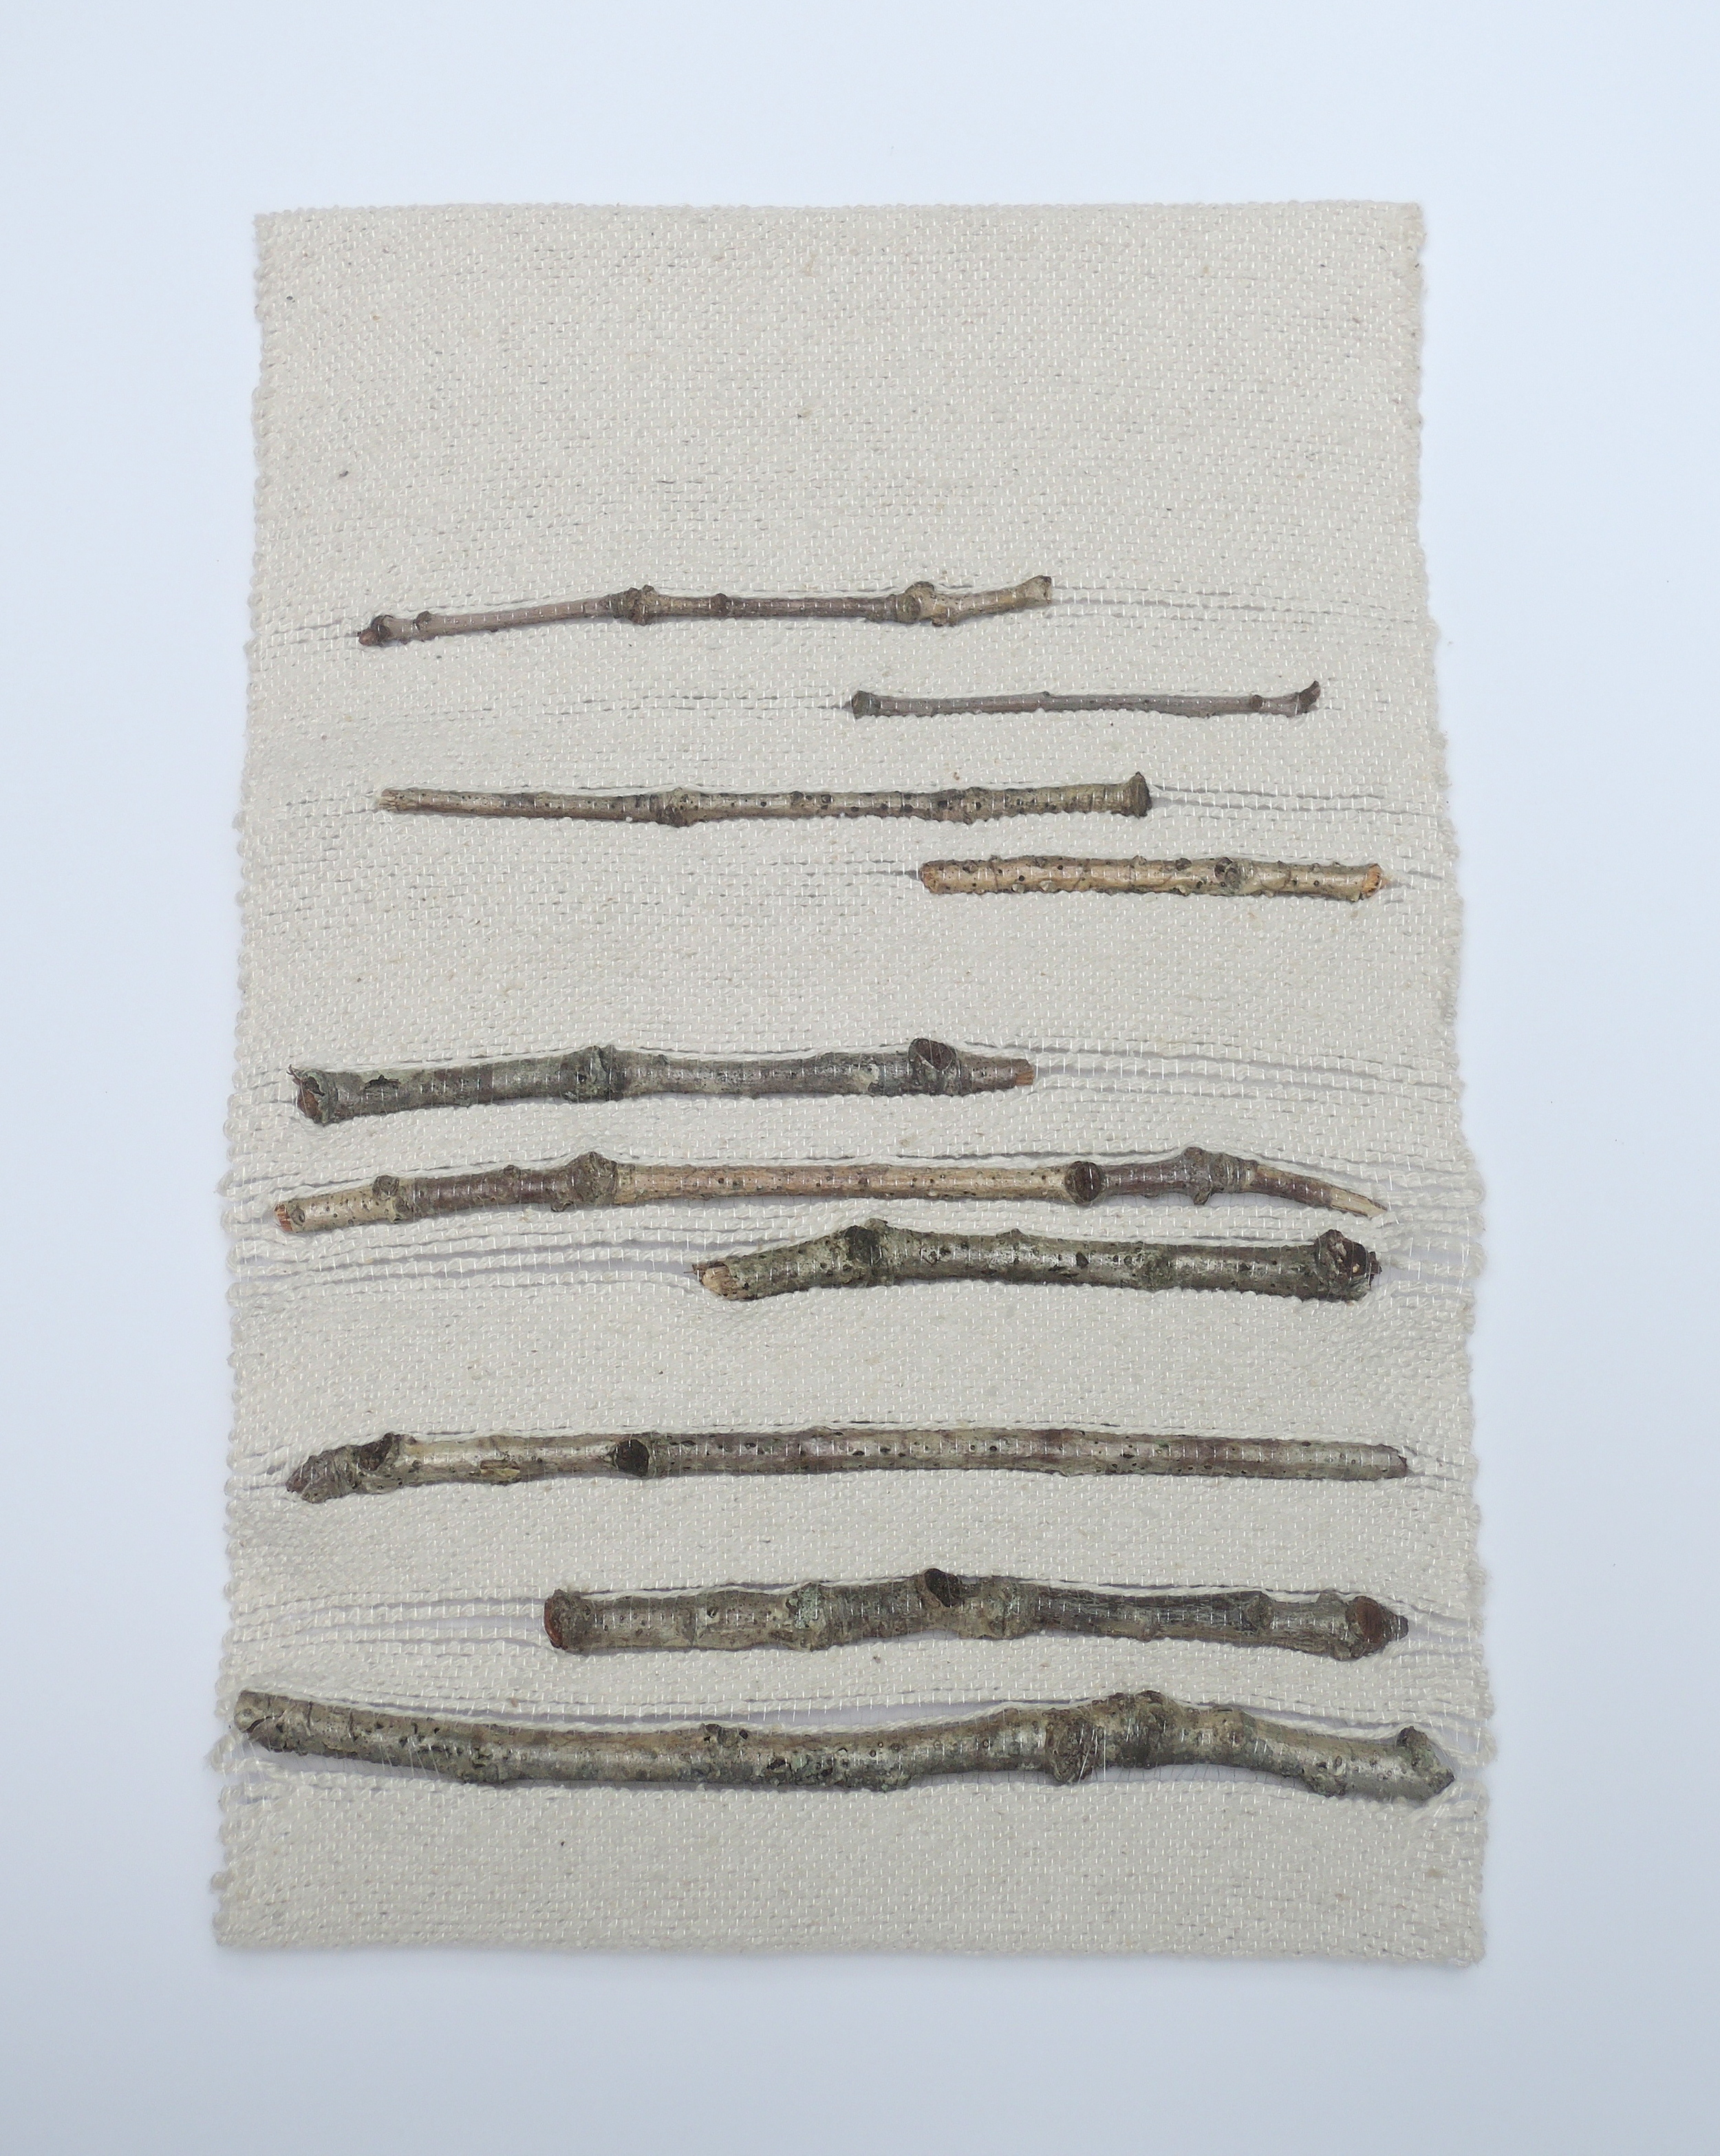 Finished twig weaving: Found and Fancy (Materials), silk noil, twigs, monofilament, 2014.